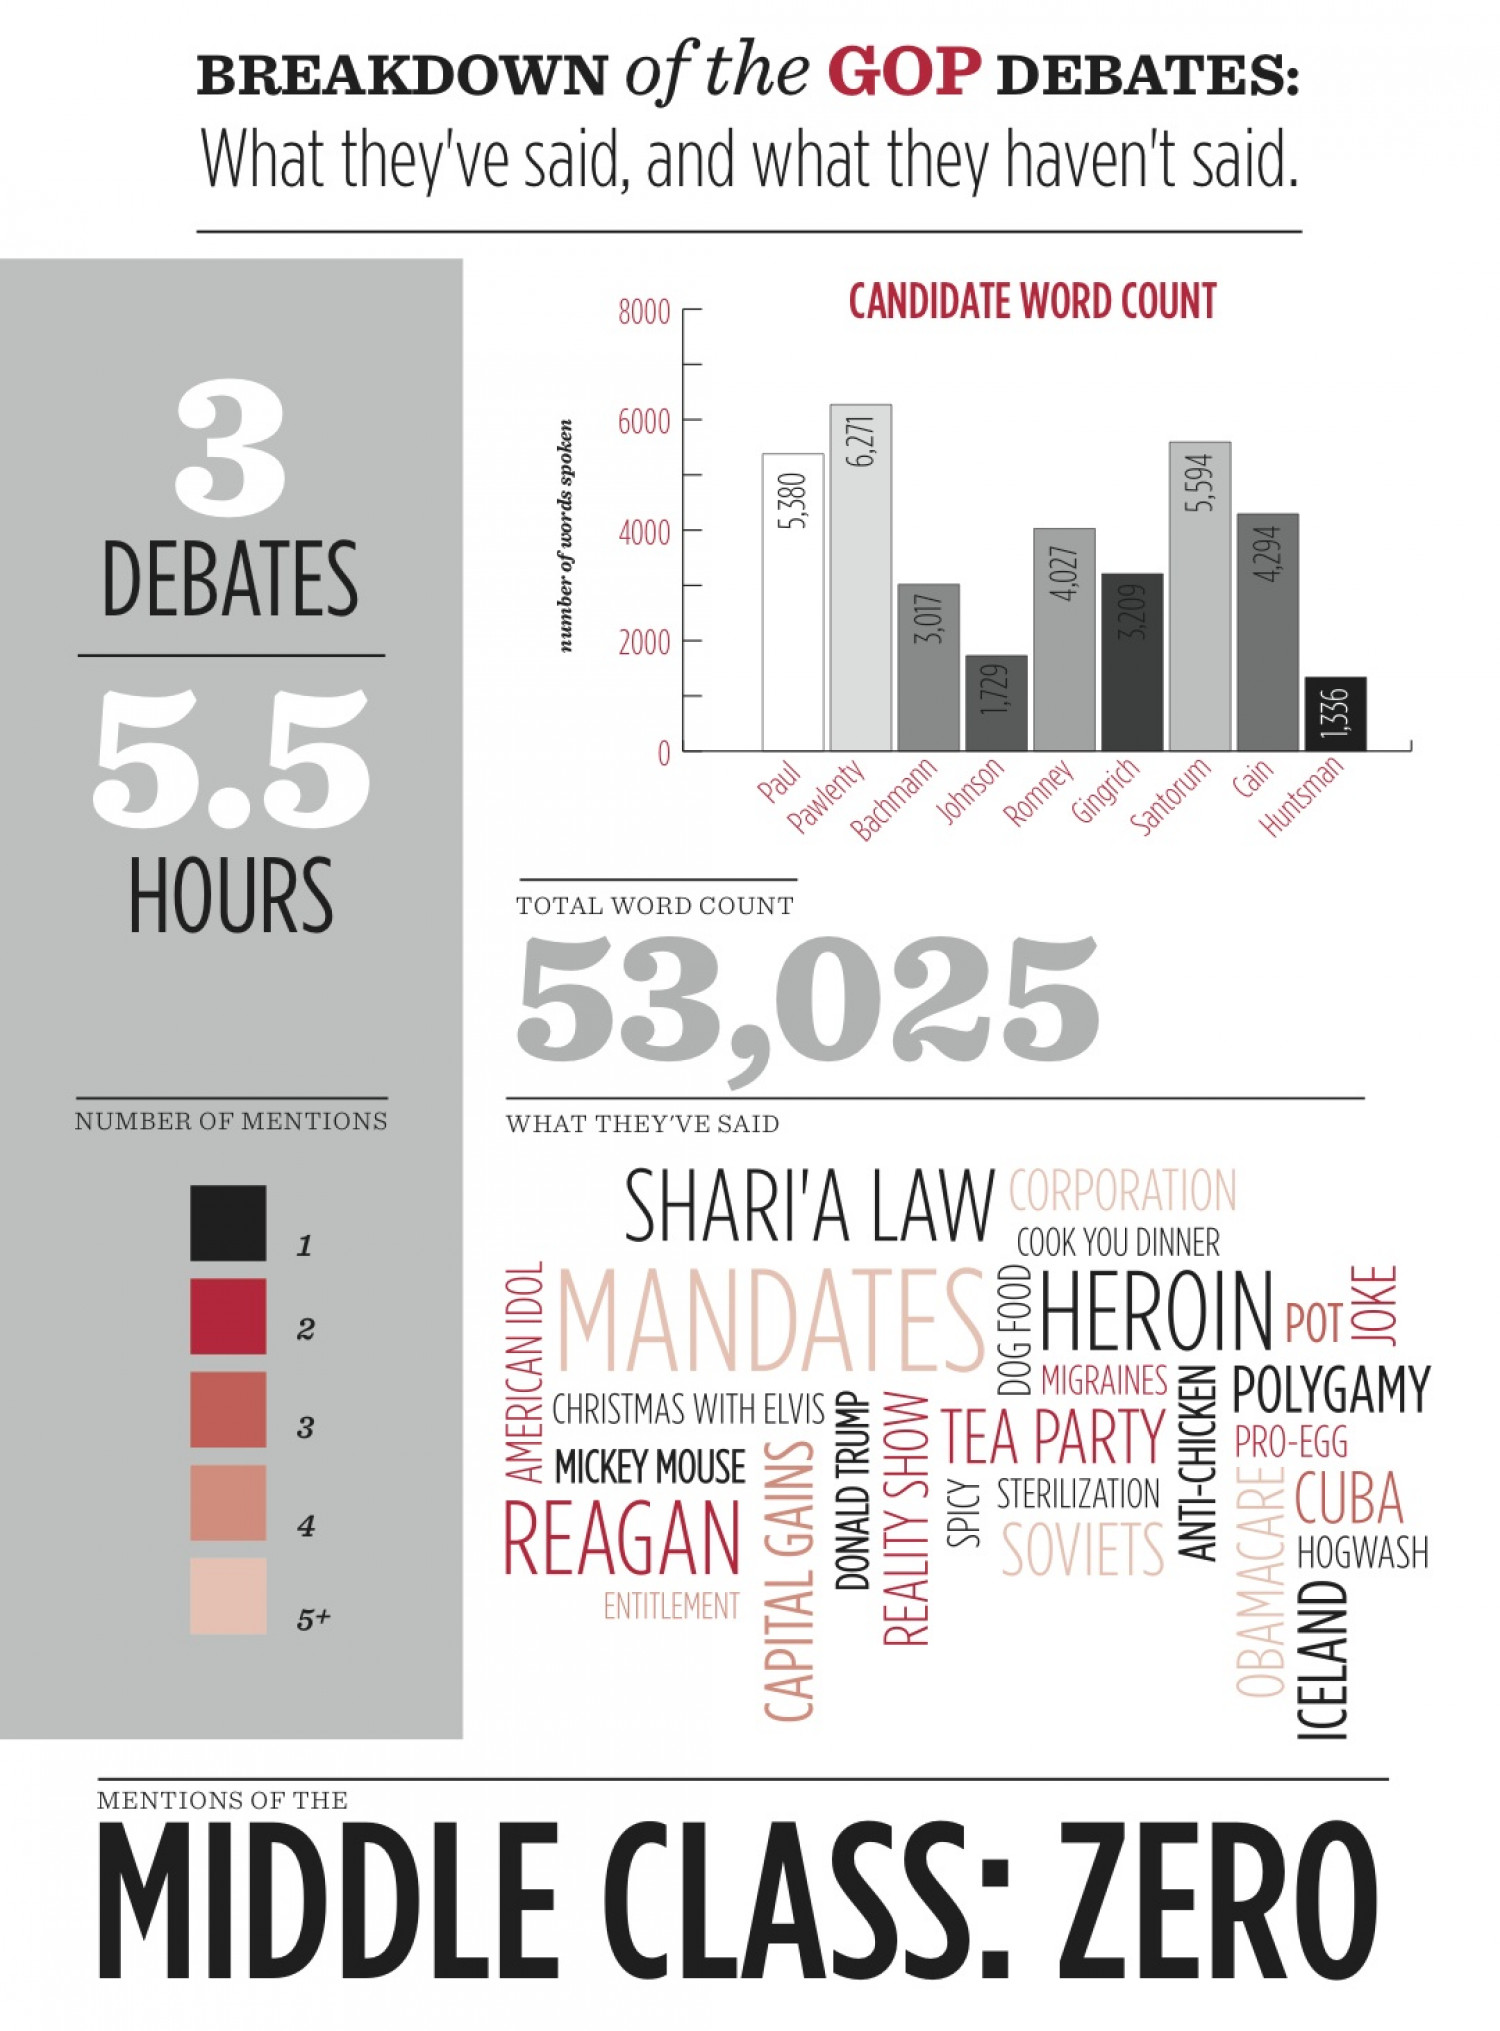 Breakdown of the GOP Debates: What They've Said and What They Haven't Said  Infographic